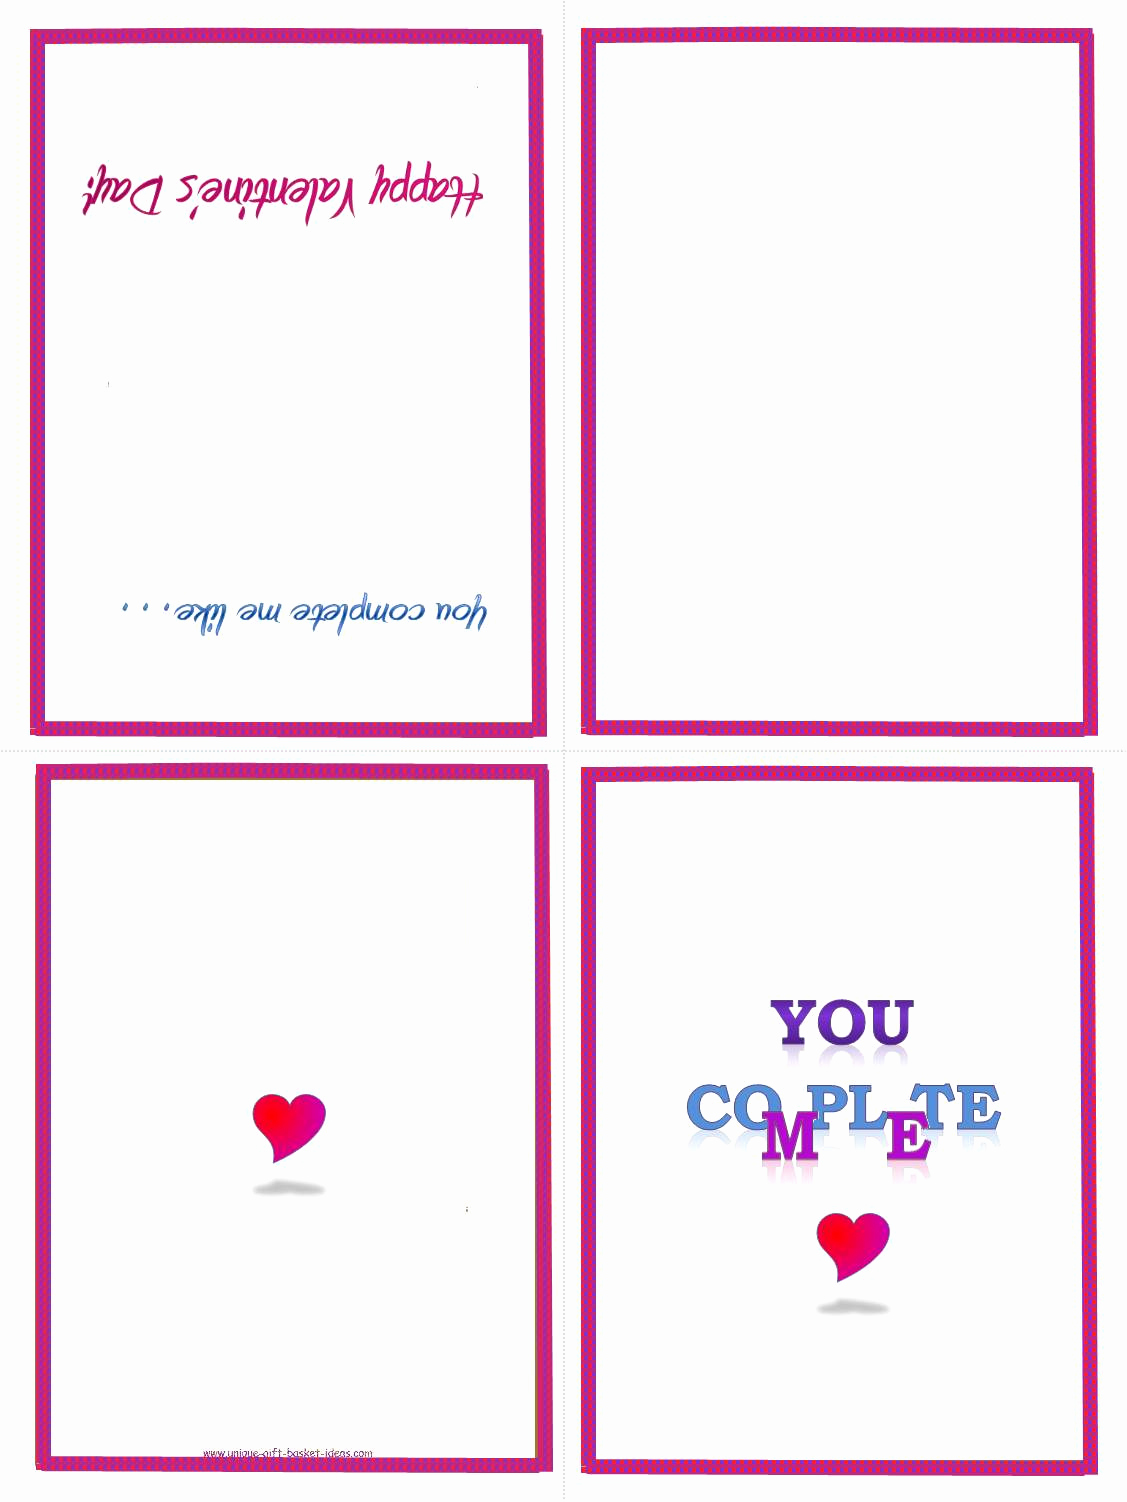 Printable Greeting Card Templates Beautiful Easy Homemade Gift Ideas Free Printable Gifts